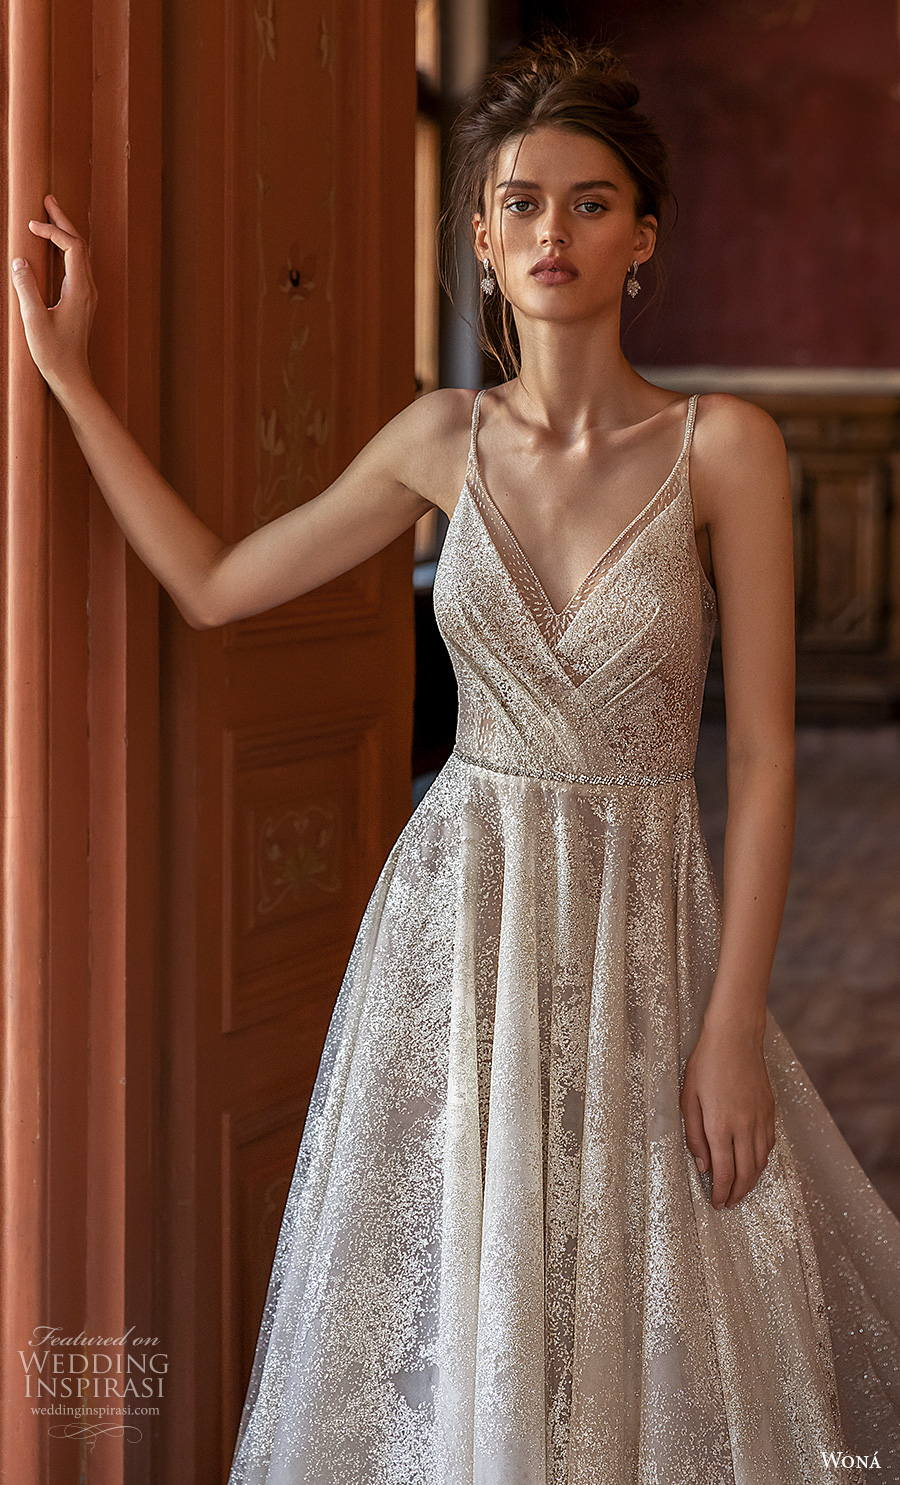 wona concept 2021 romance bridal sleeveless spaghetti strap v neck wrap over full embellishment glamorous romantic a  line wedding dress v back chapel train (17) zv mv